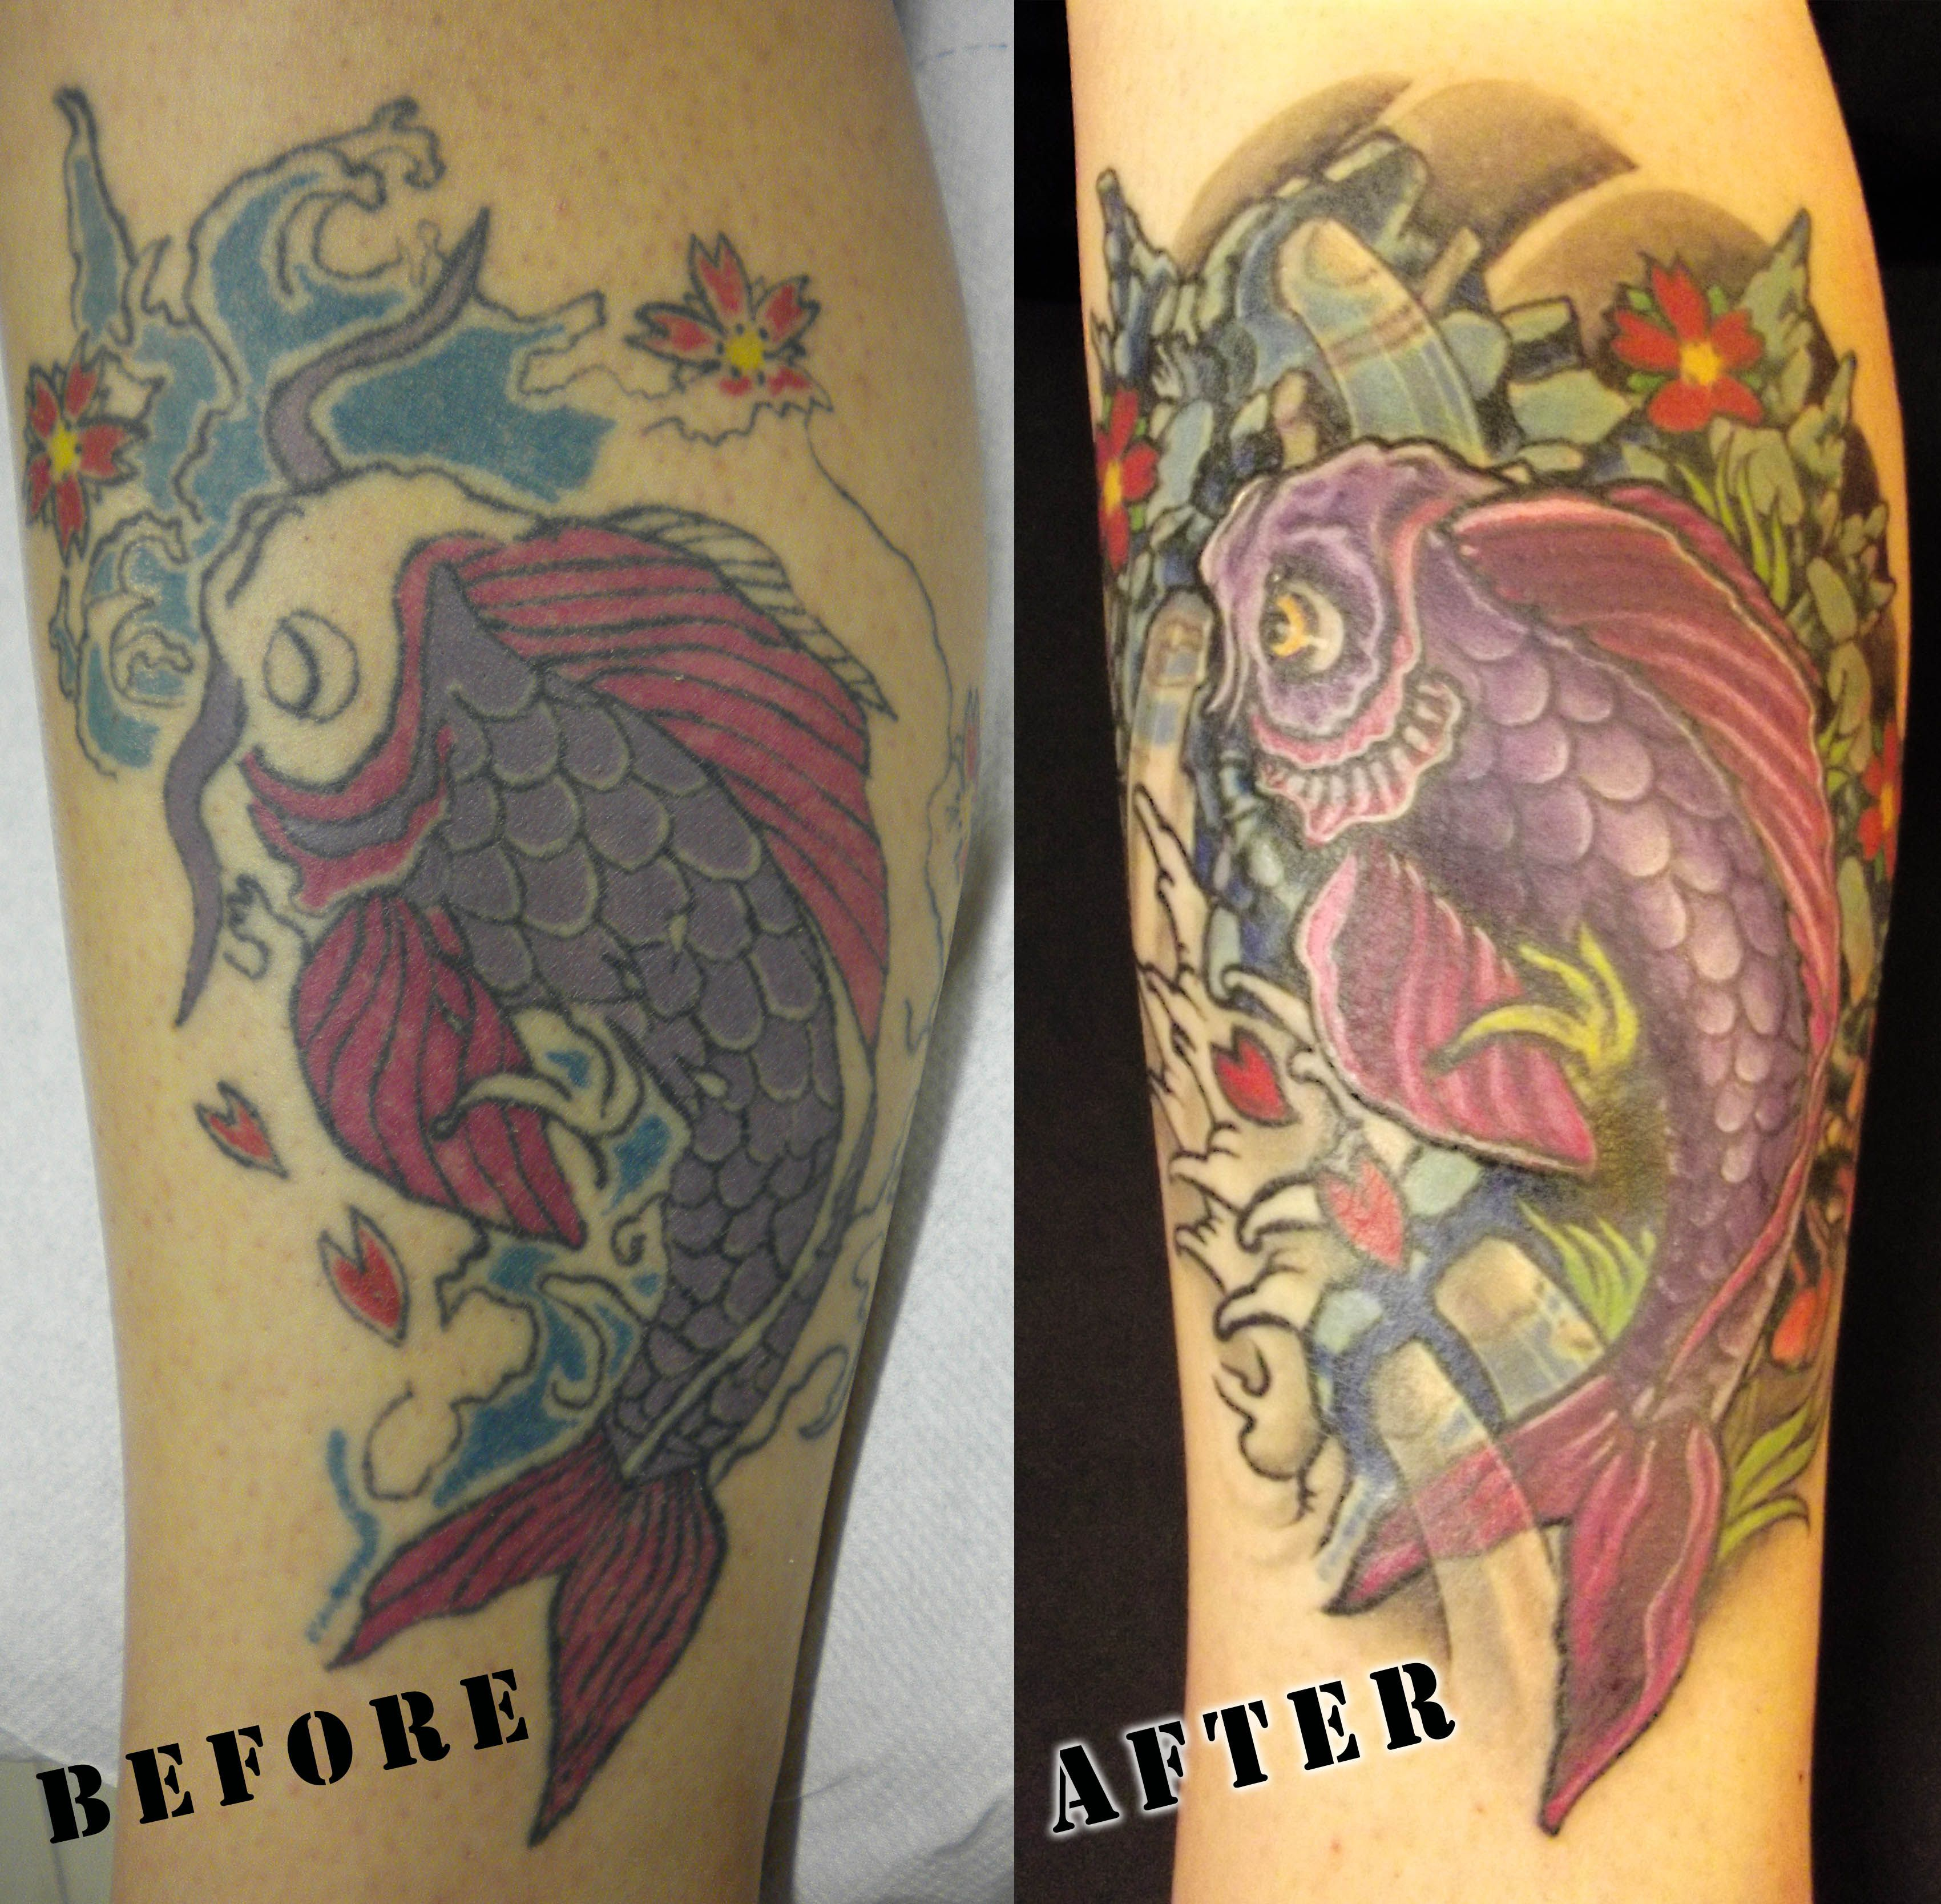 Www Ettore Bechis Com Best Miami Tattoo Shop Koi Fish Cover Up